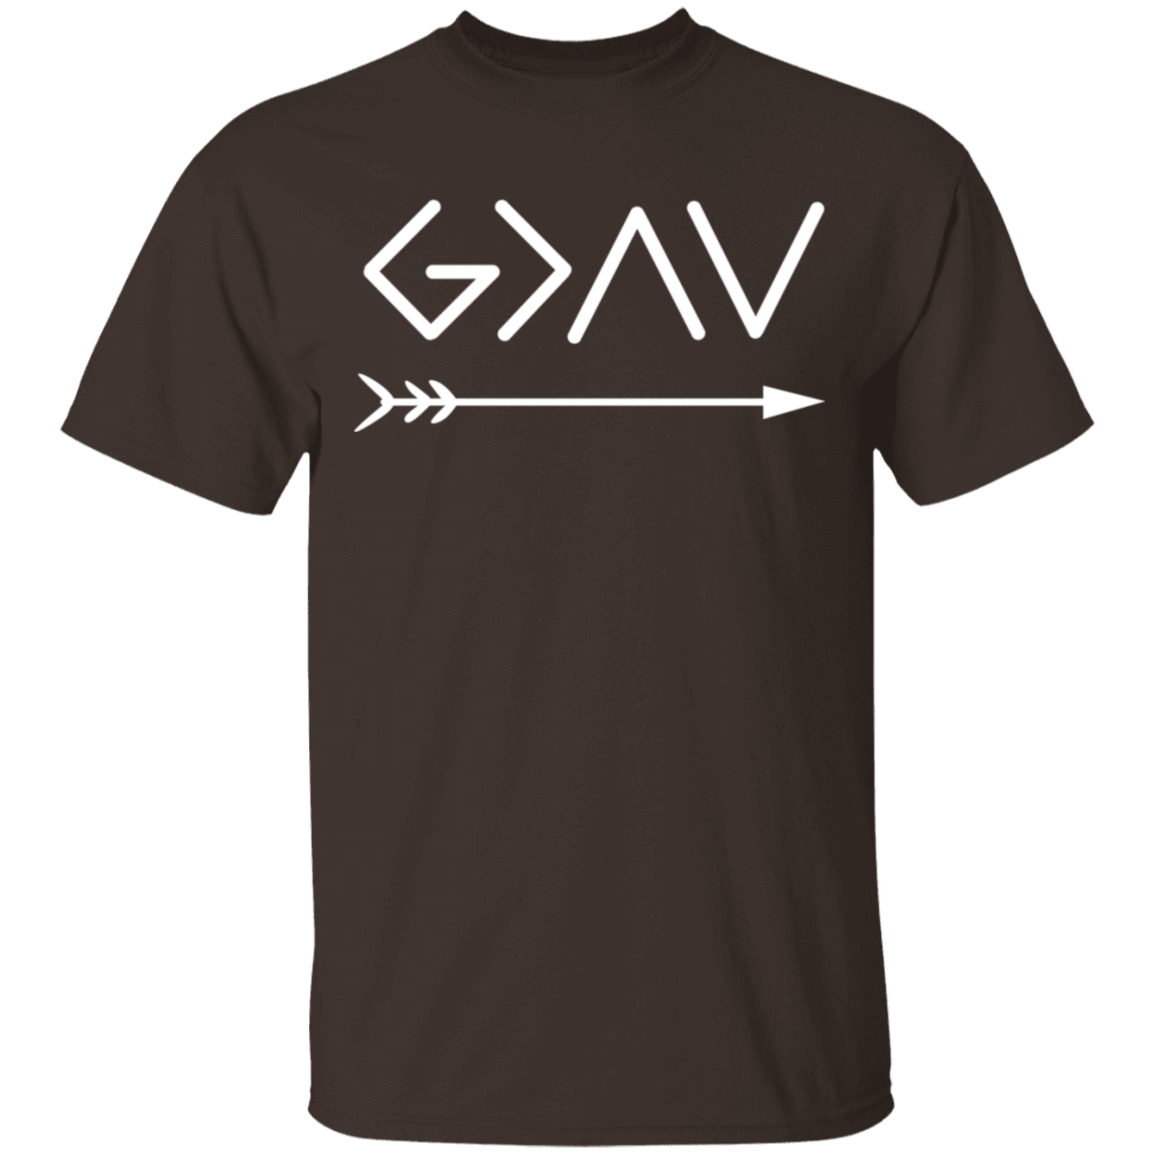 God Is Greater Than The Highs and The Lows T-Shirts, Hoodies 22-2283-80162976-12087 - Tee Ript